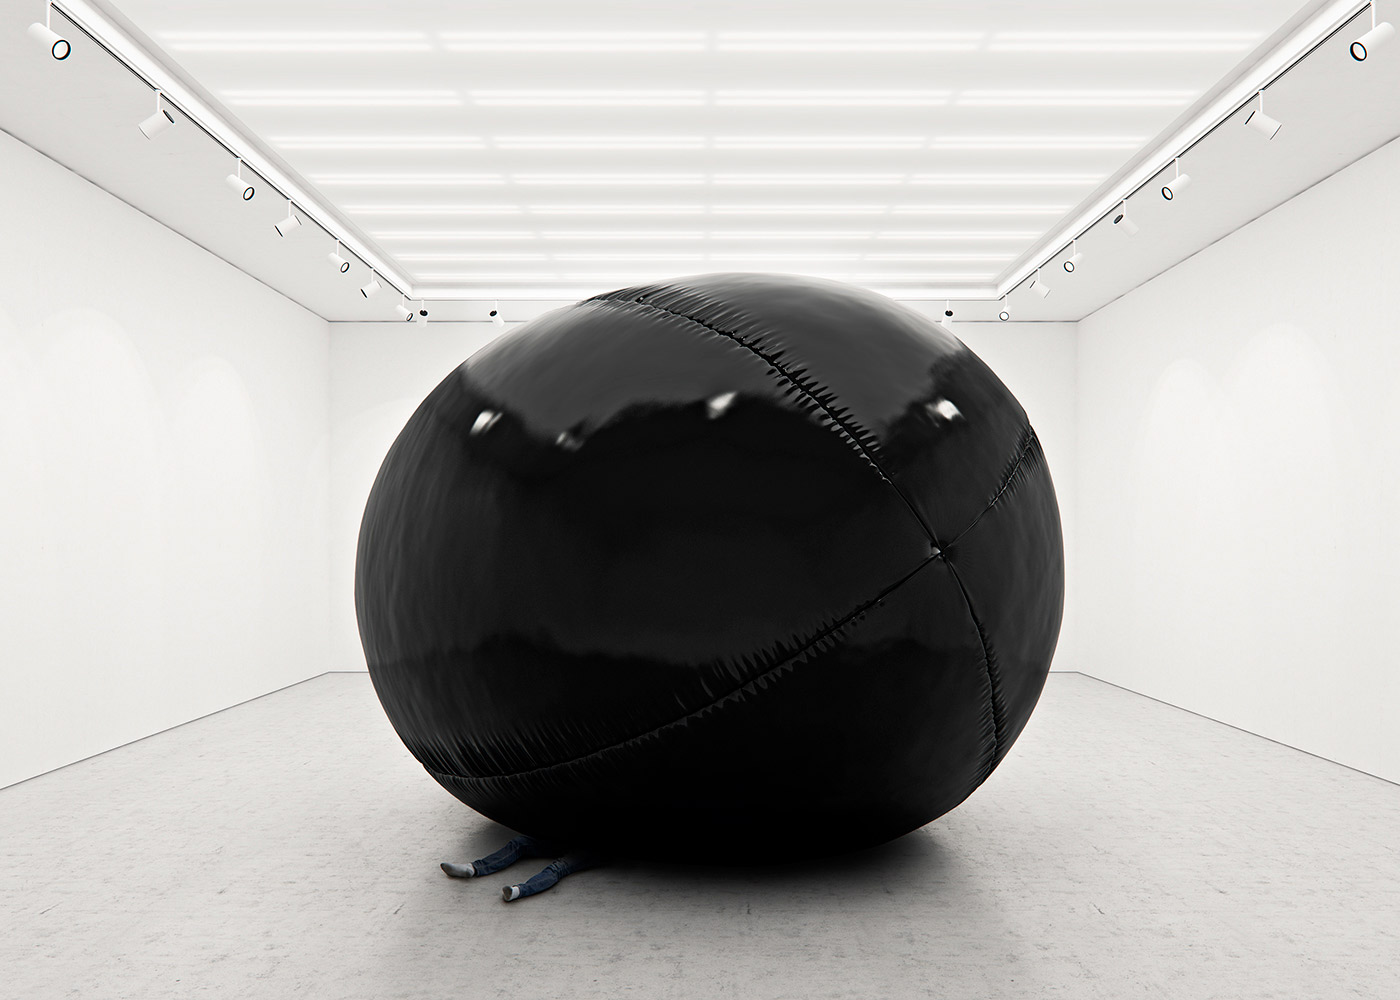 Black Balloons Project - Conceptual Art by Tadao Cern